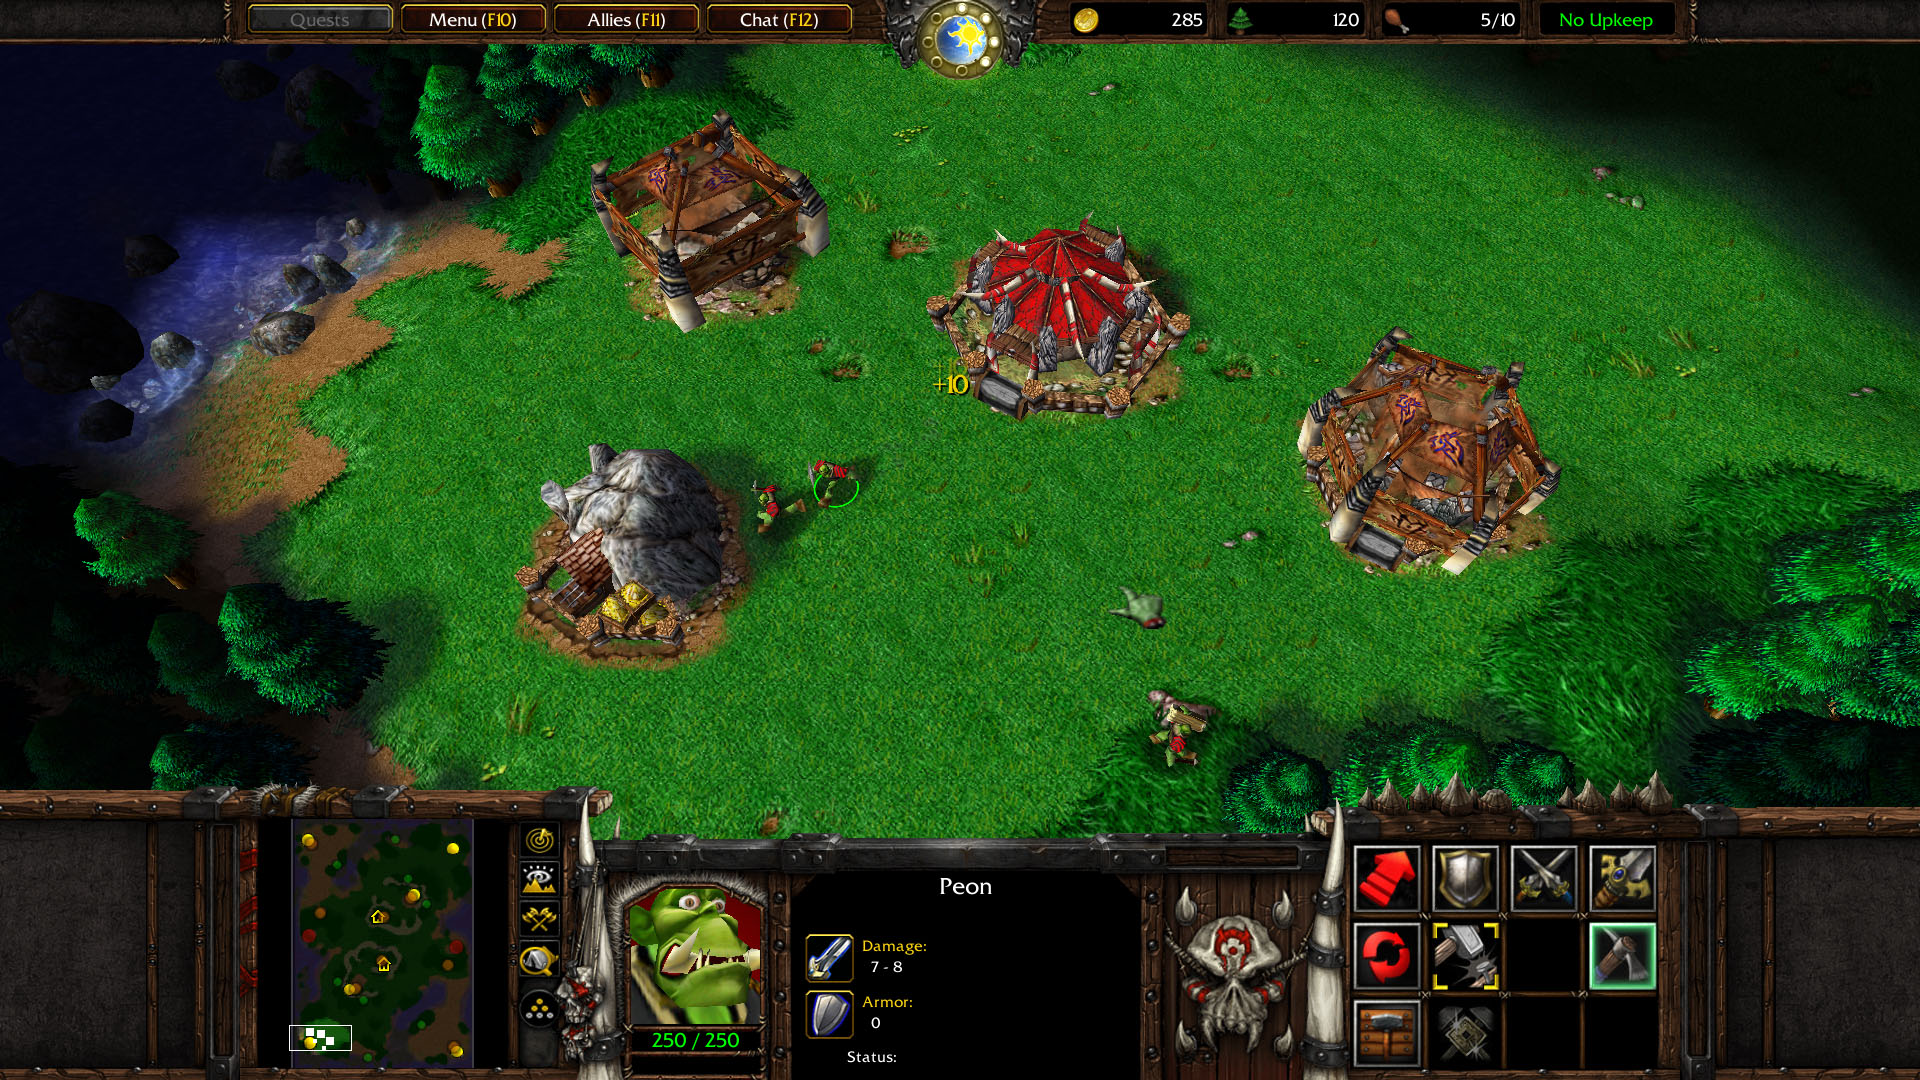 Warcraft Iii Gets A Widescreen Update Remastered Version Incoming